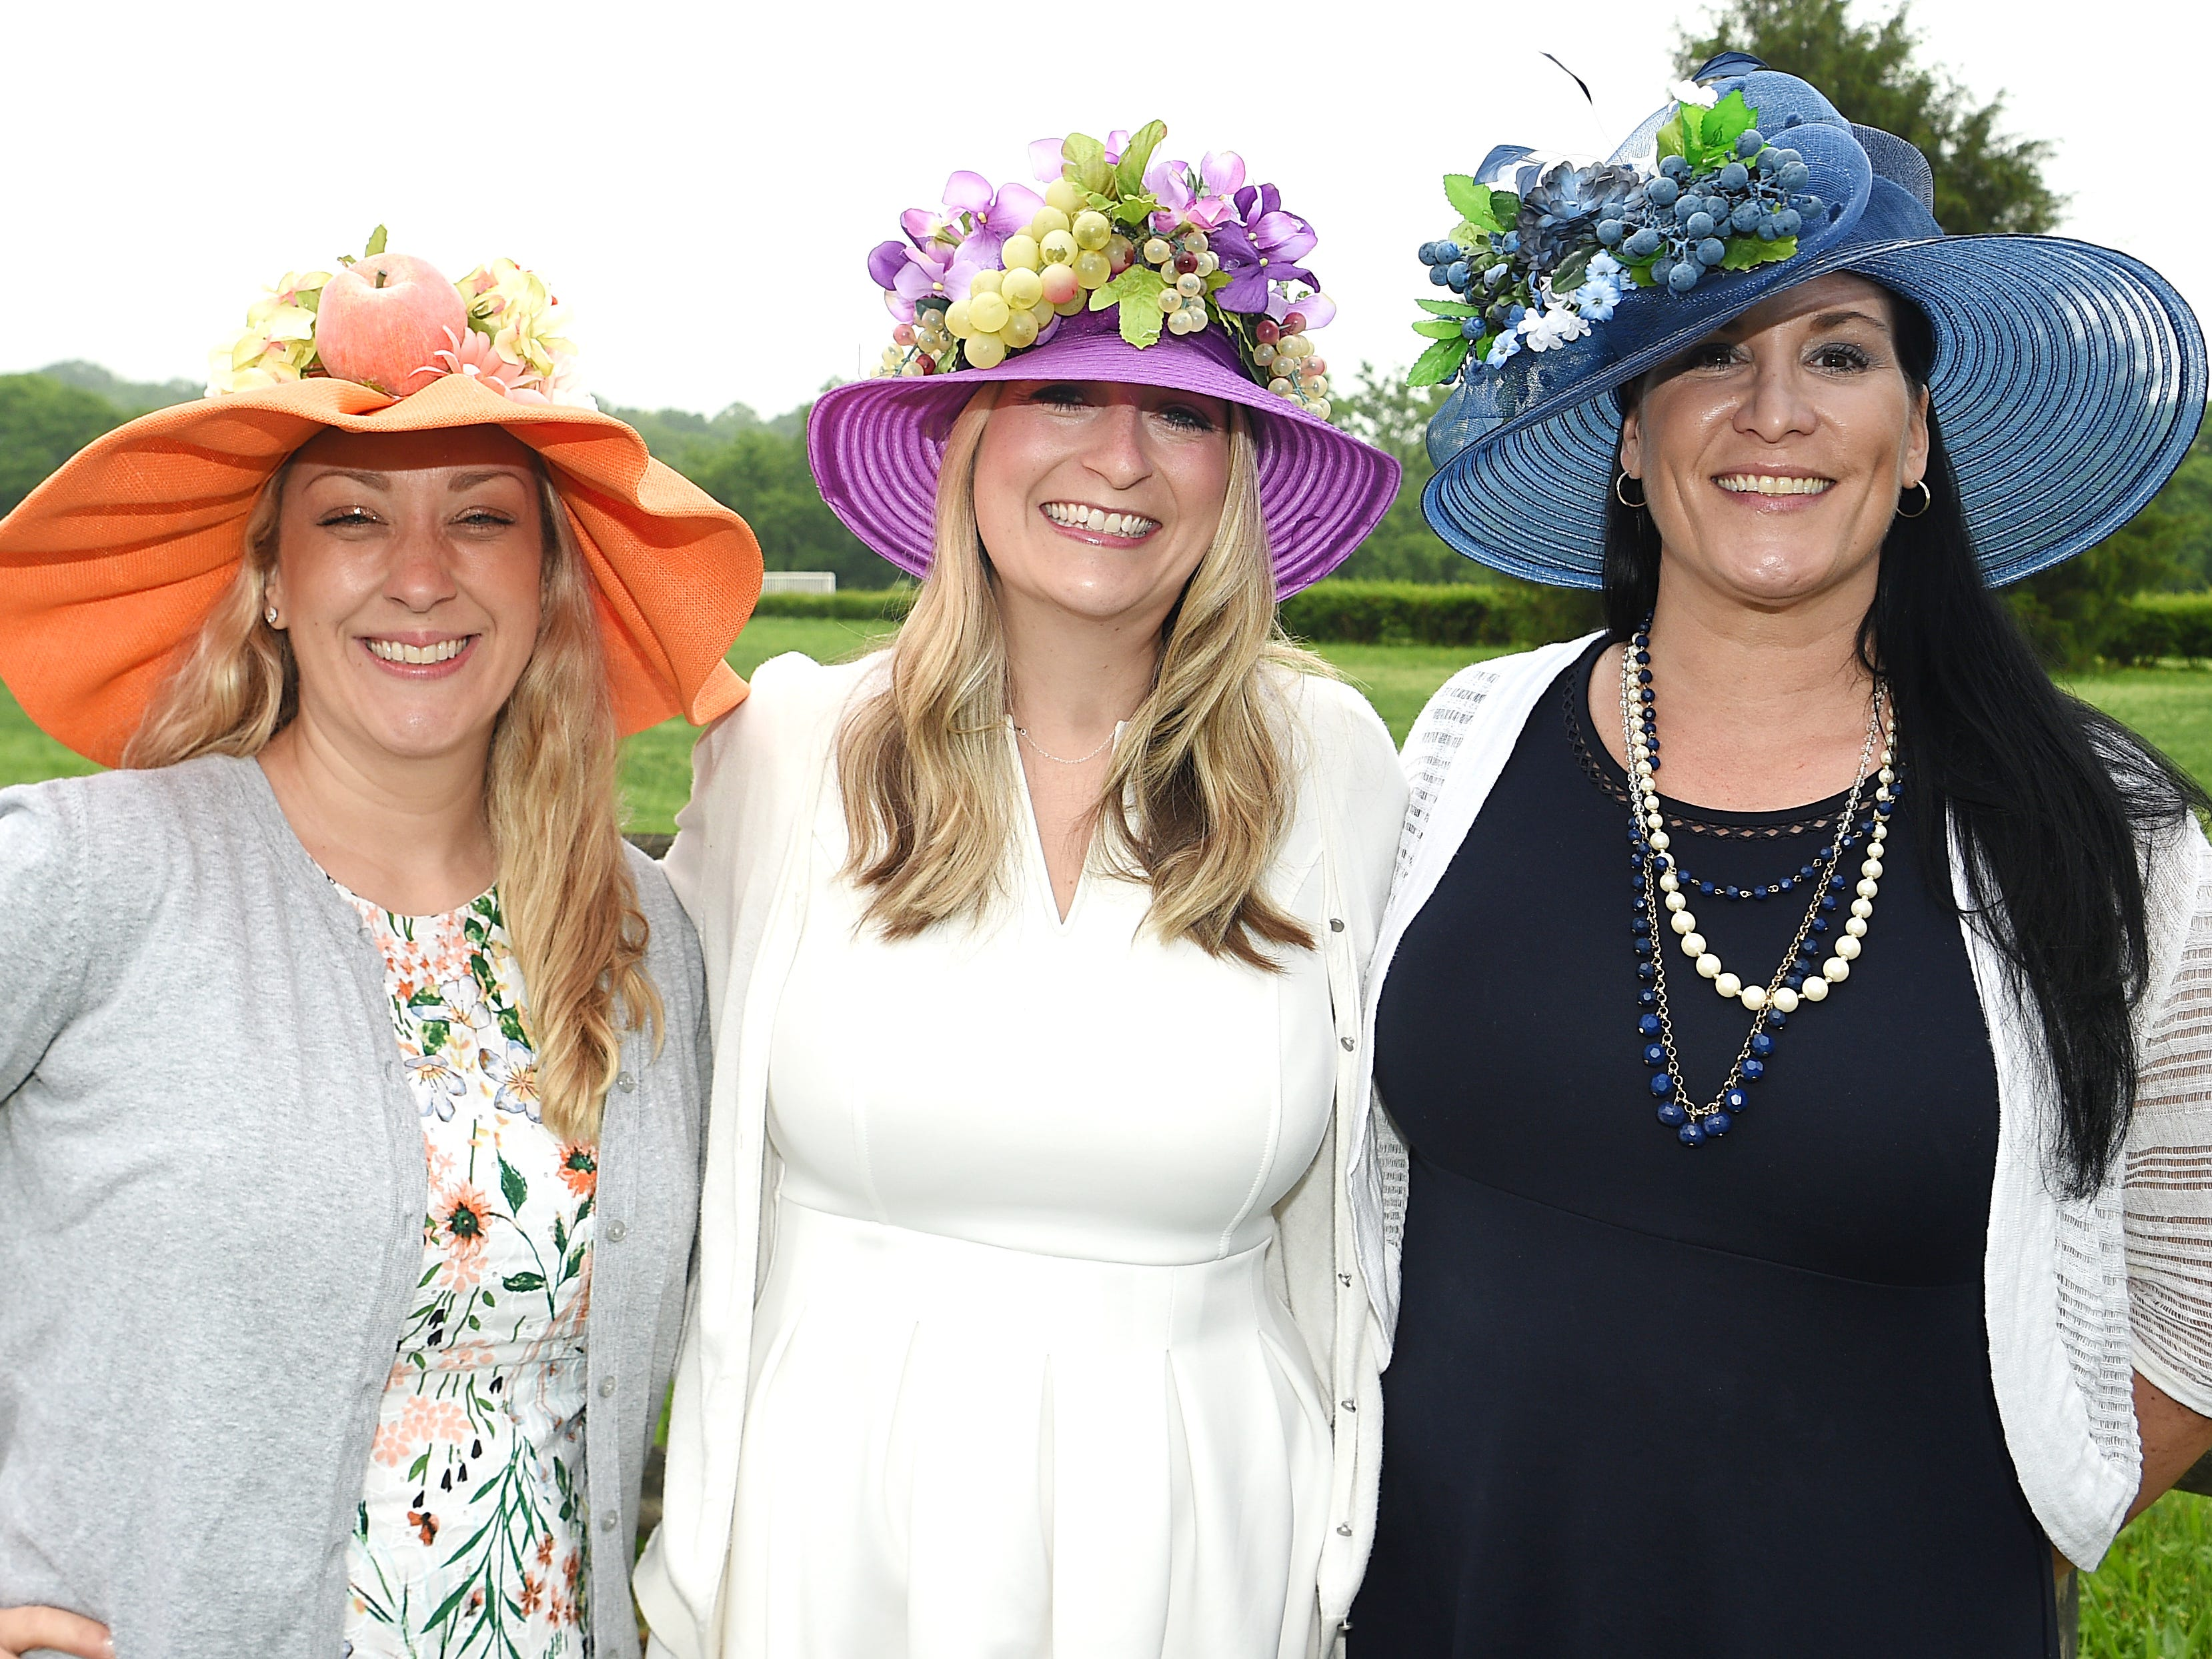 Casey Williams, Amanda Hurley, and Diana Sanderson at the 78th Iroquois Steeplechase at Percy Warner Park in Nashville on Saturday, May 11, 2019.